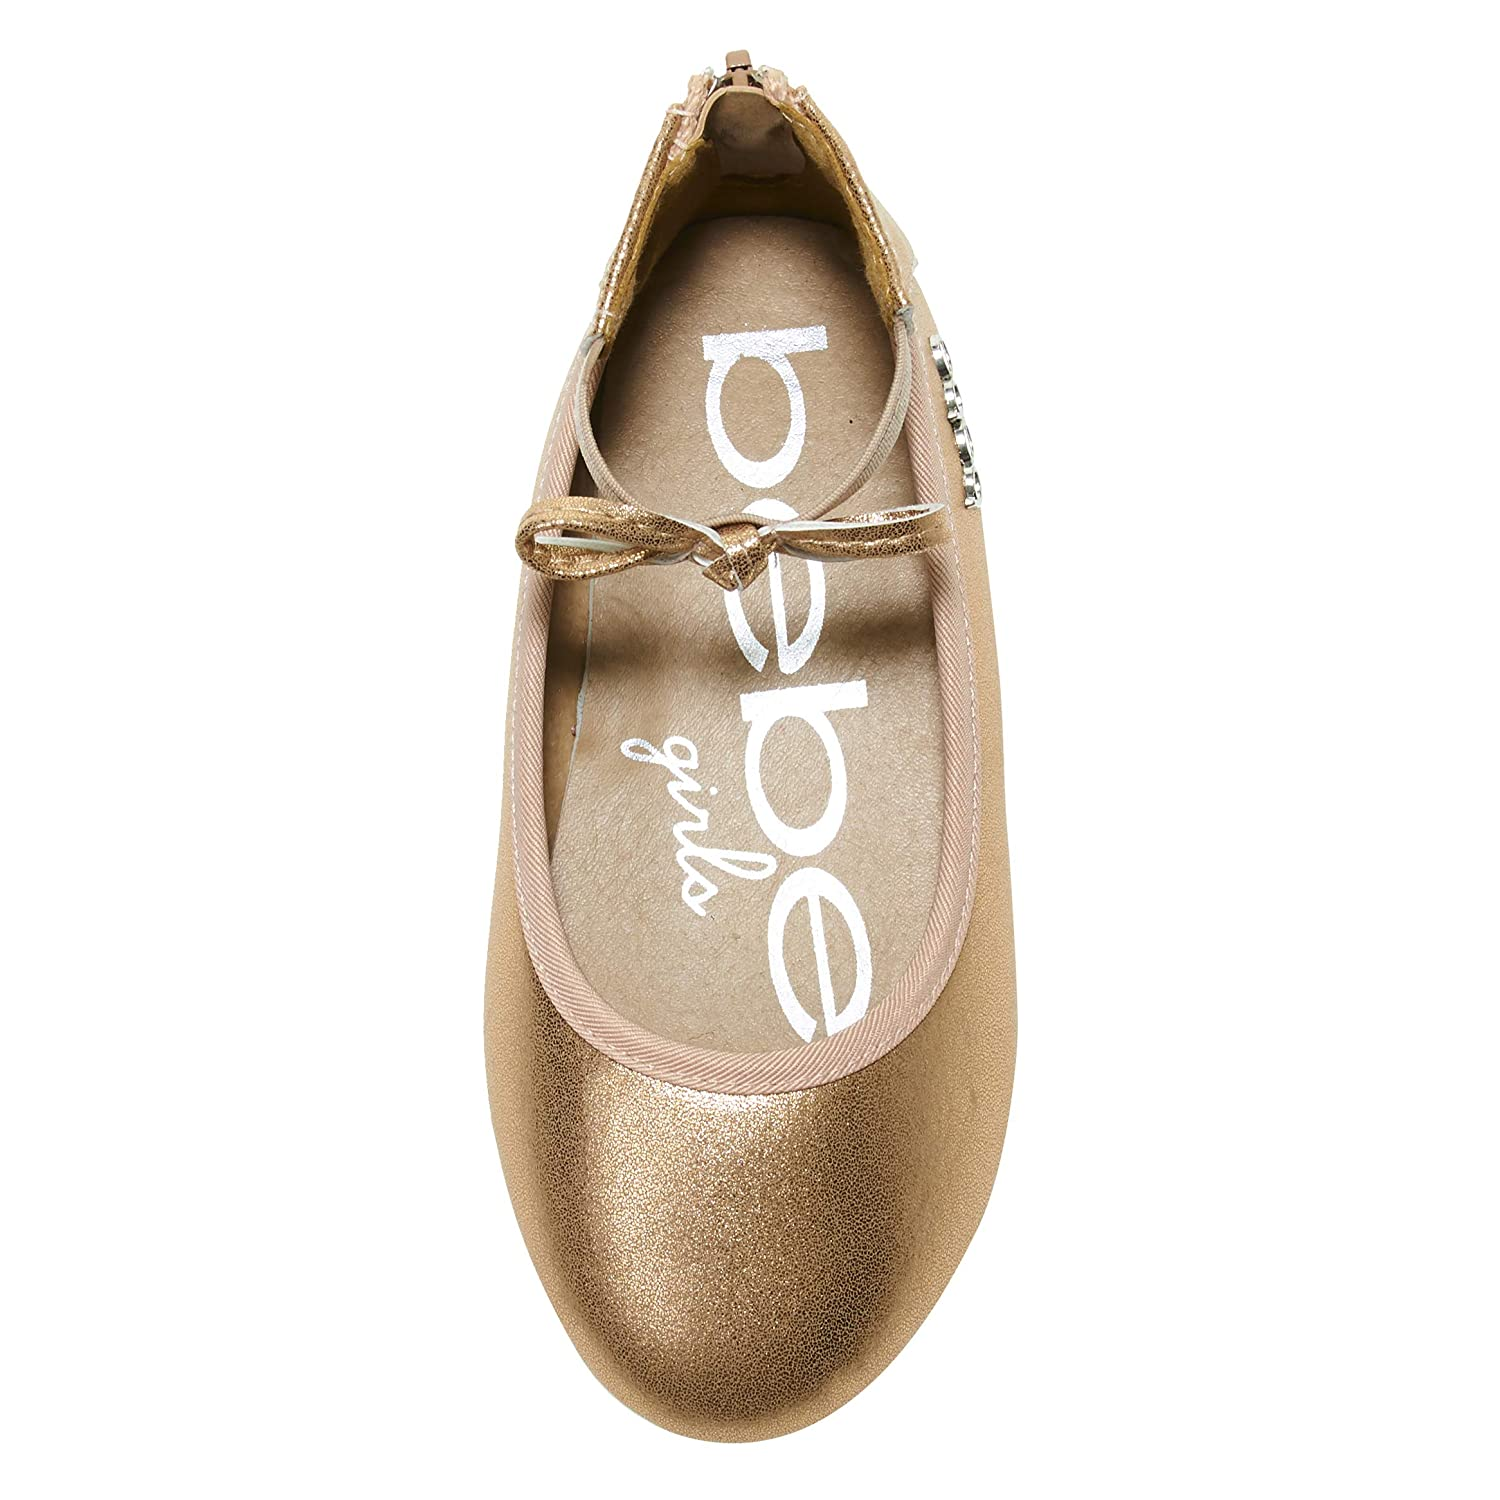 bebe Toddler Girls Ballet Flats with Elastic Ankle Strap Pearlized Bow